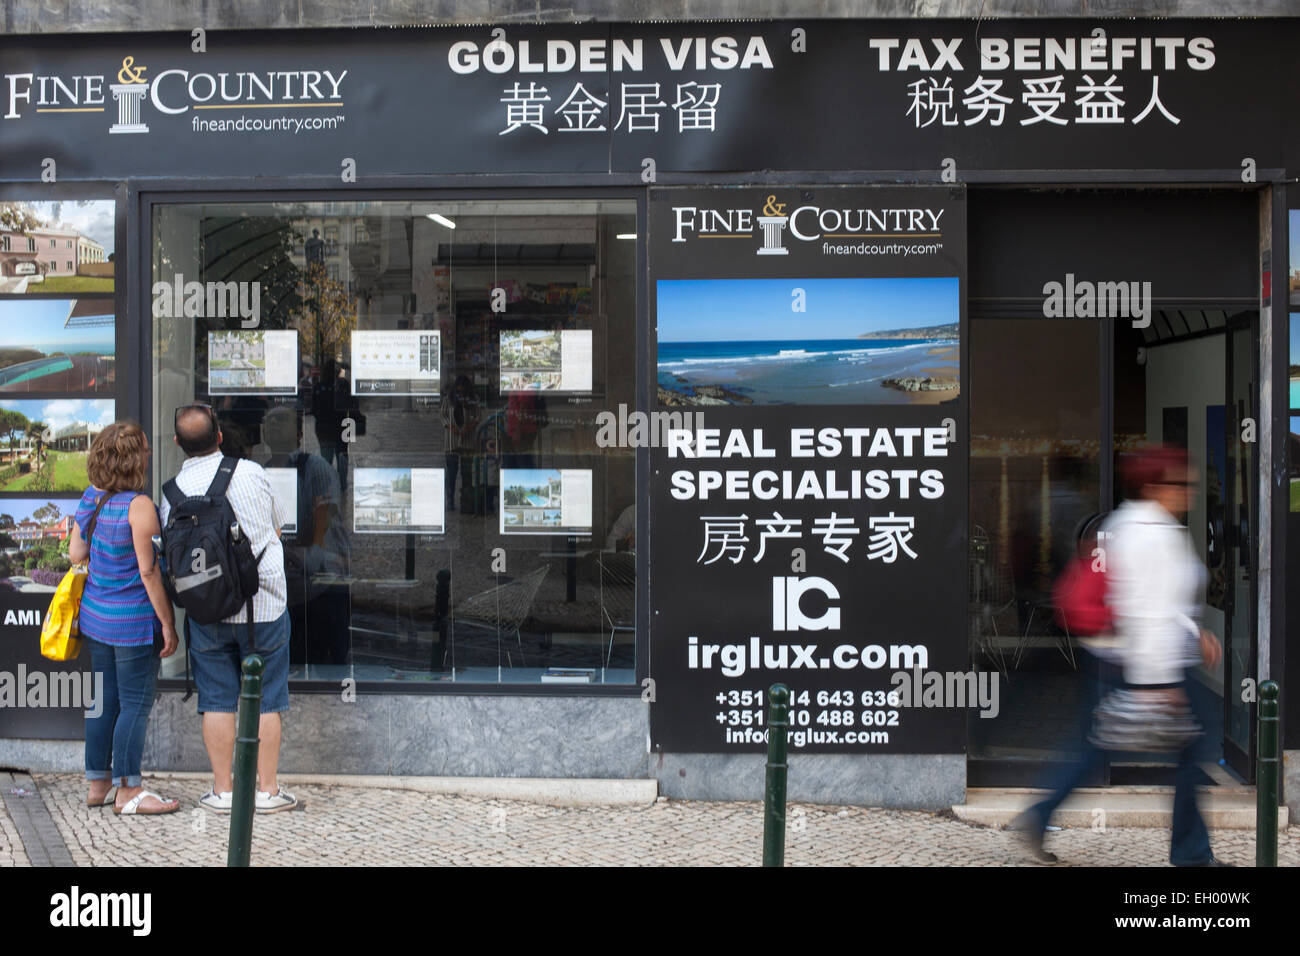 High-end Lisbon real estate agents are targeting wealthy Chinese buyers attracted by Portugal's golden visa - Stock Image